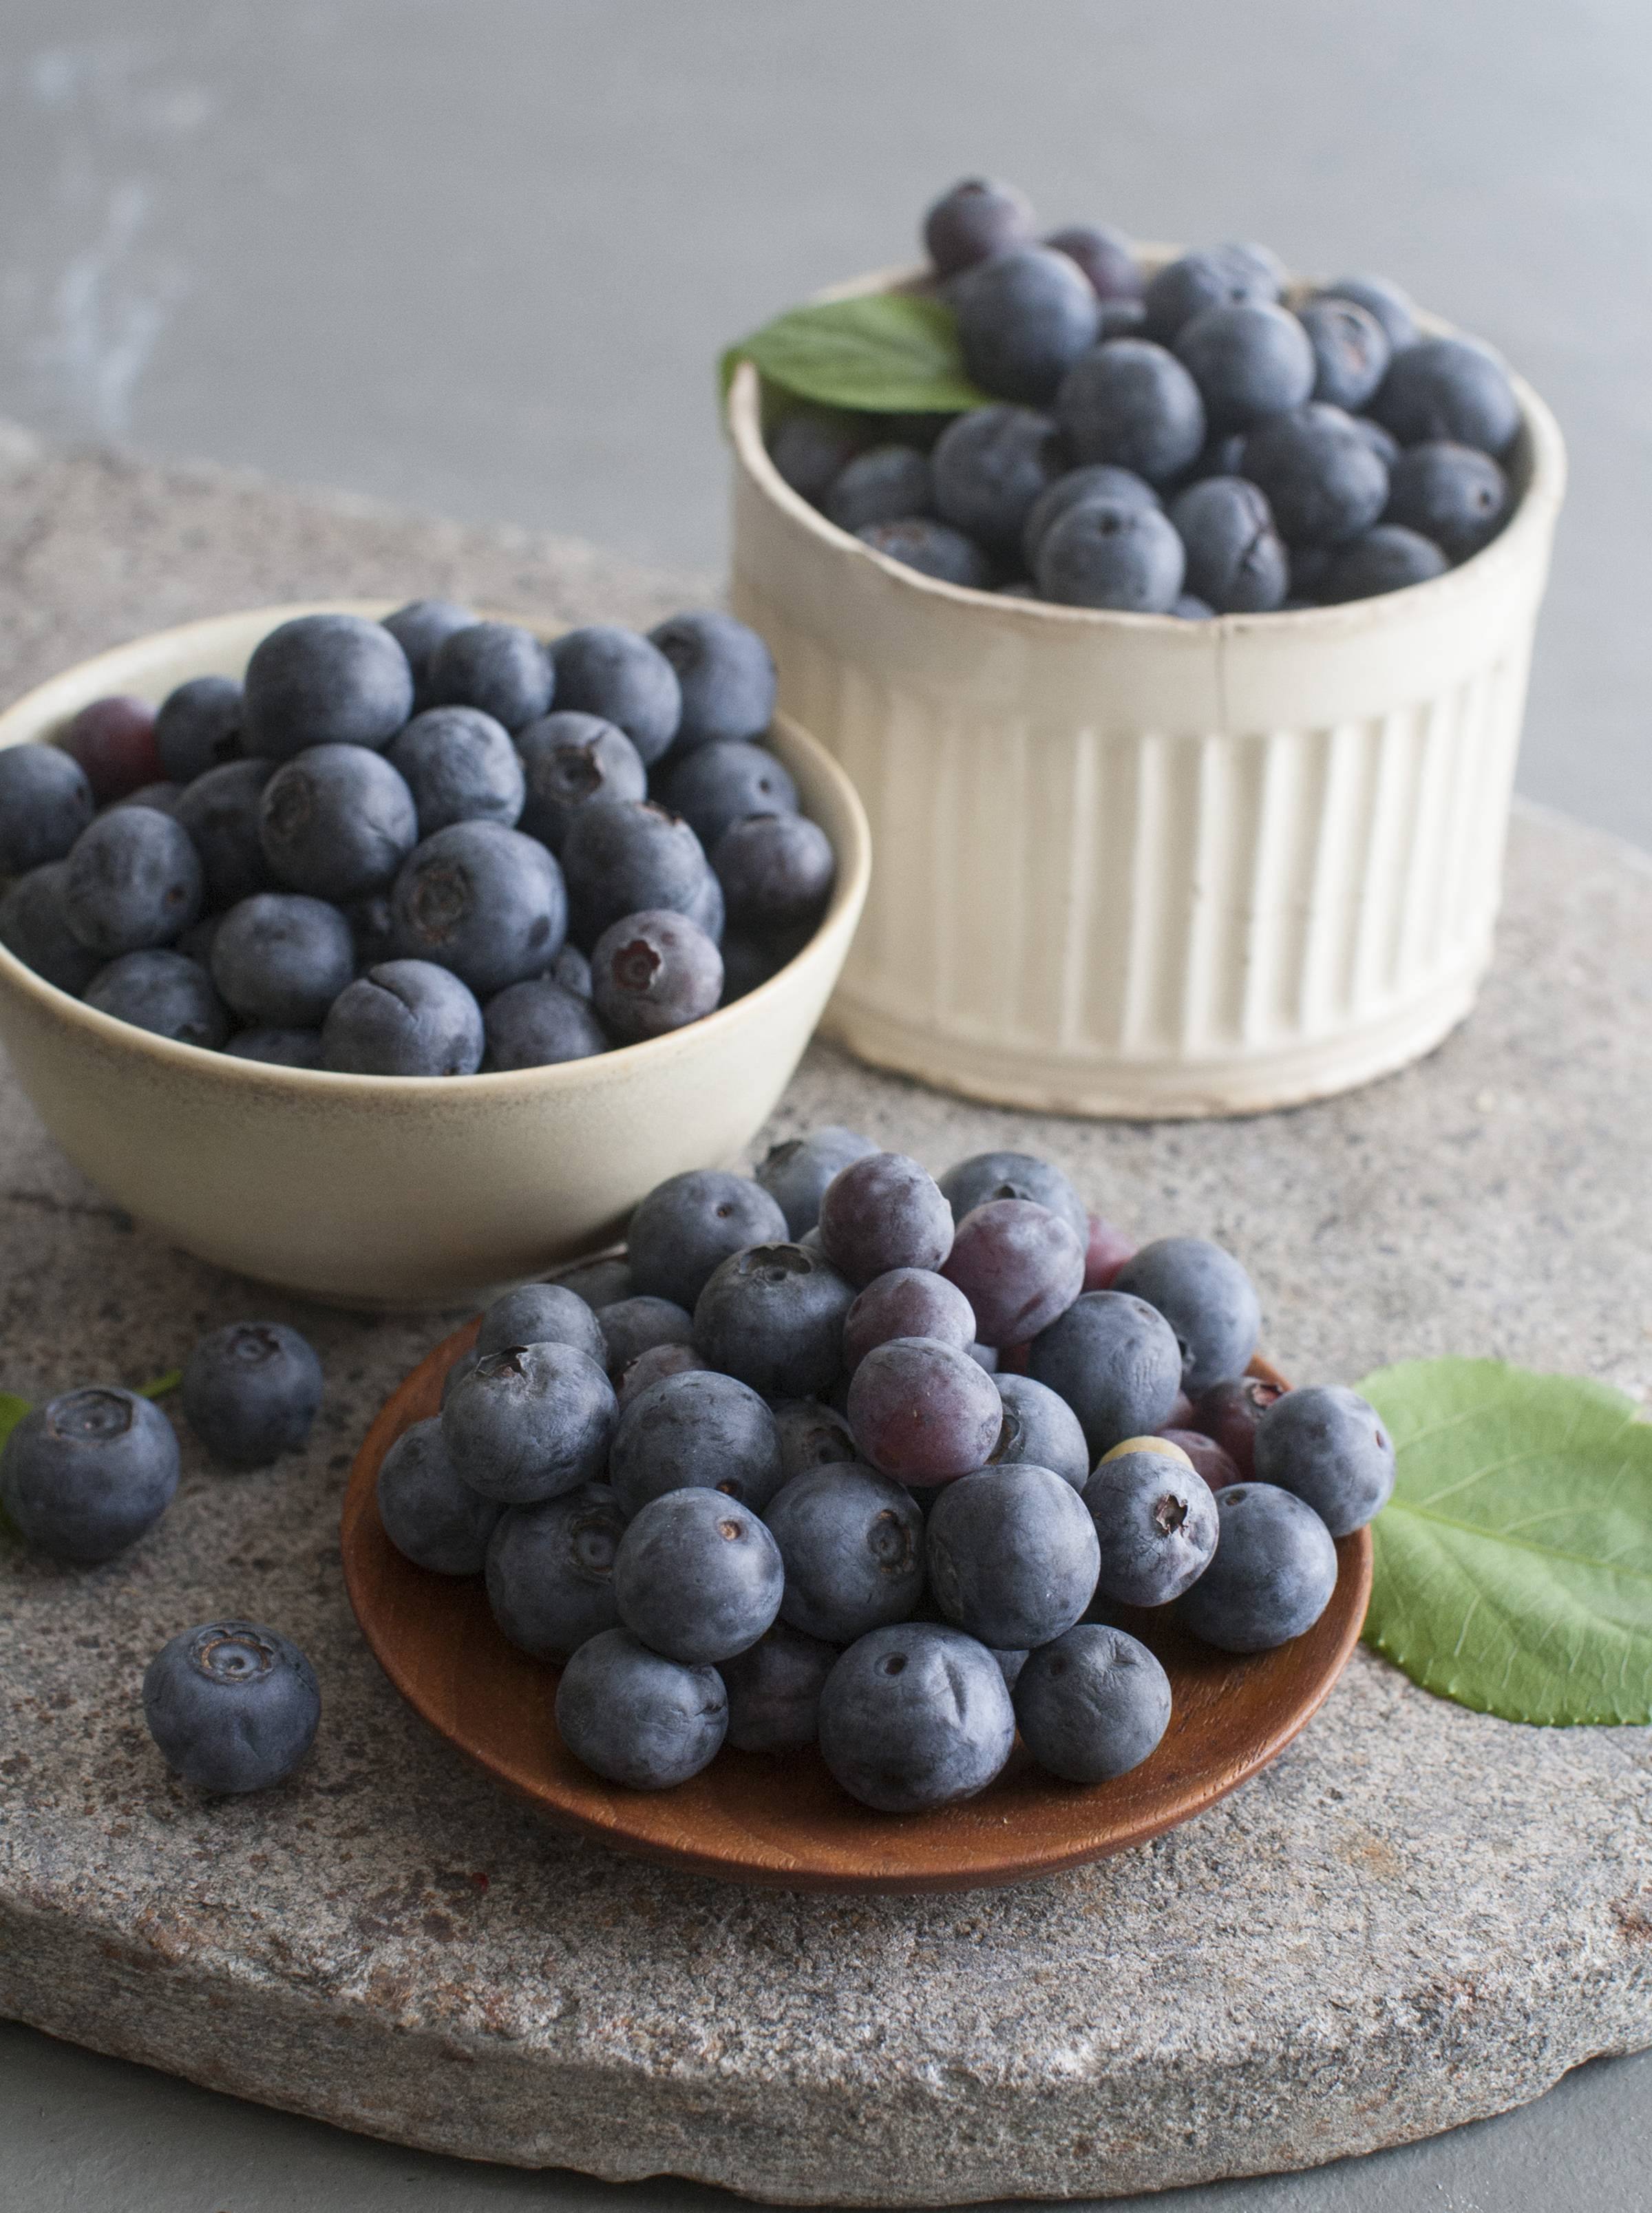 Take a fresh approach to the season's best blueberries by using them in salsa or in a sandwich spread.